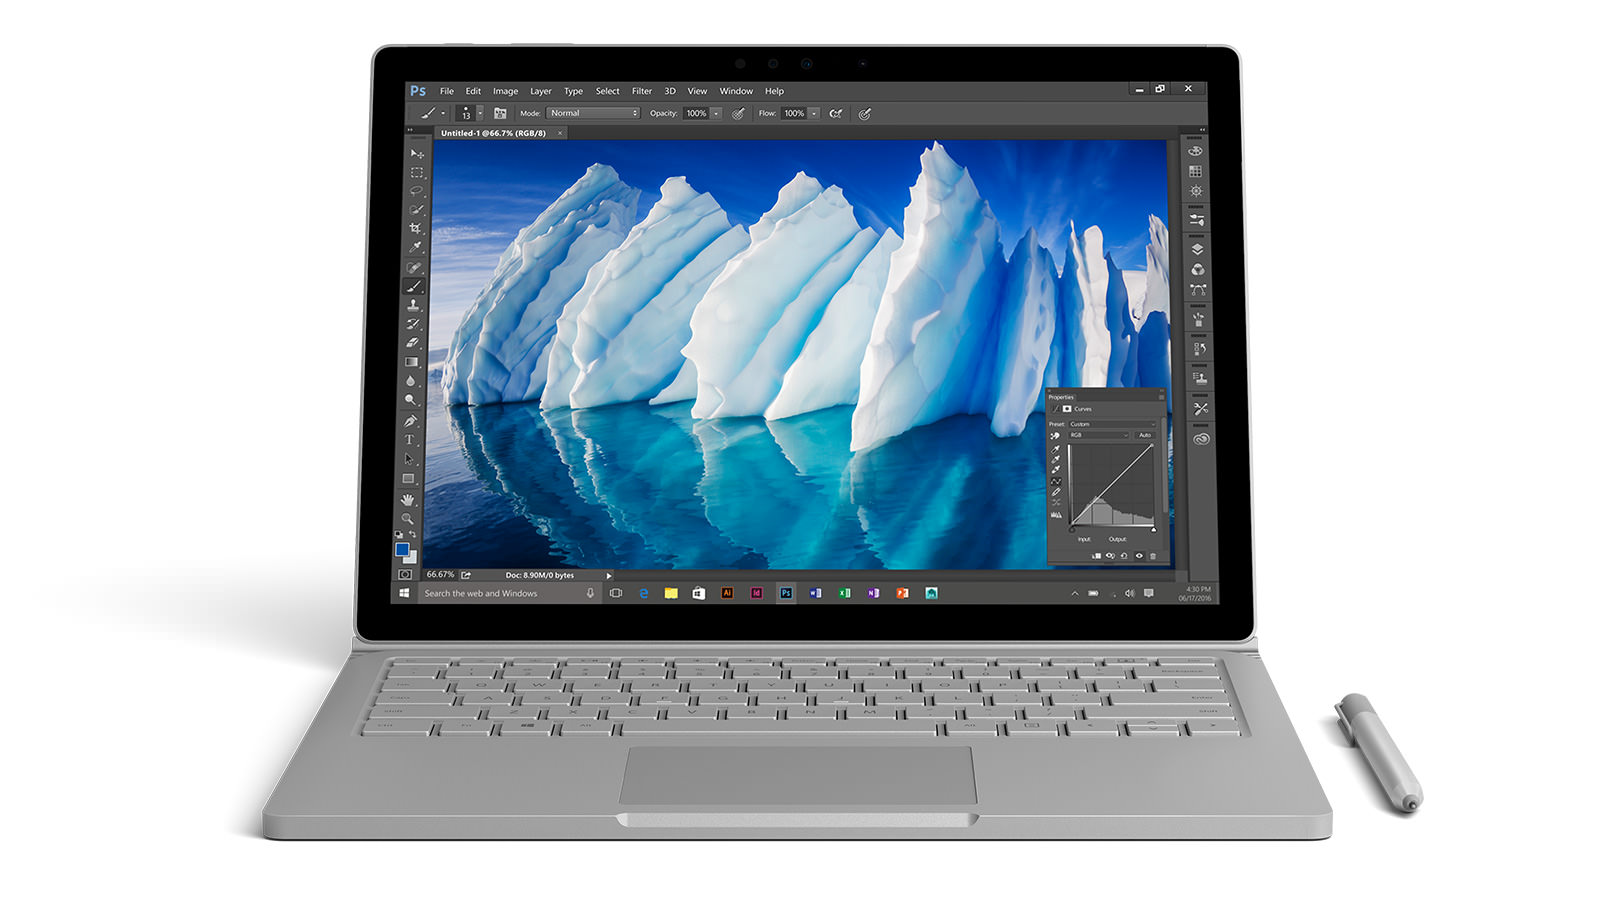 Surface Book Home 1 HeroFullBleed V1 image